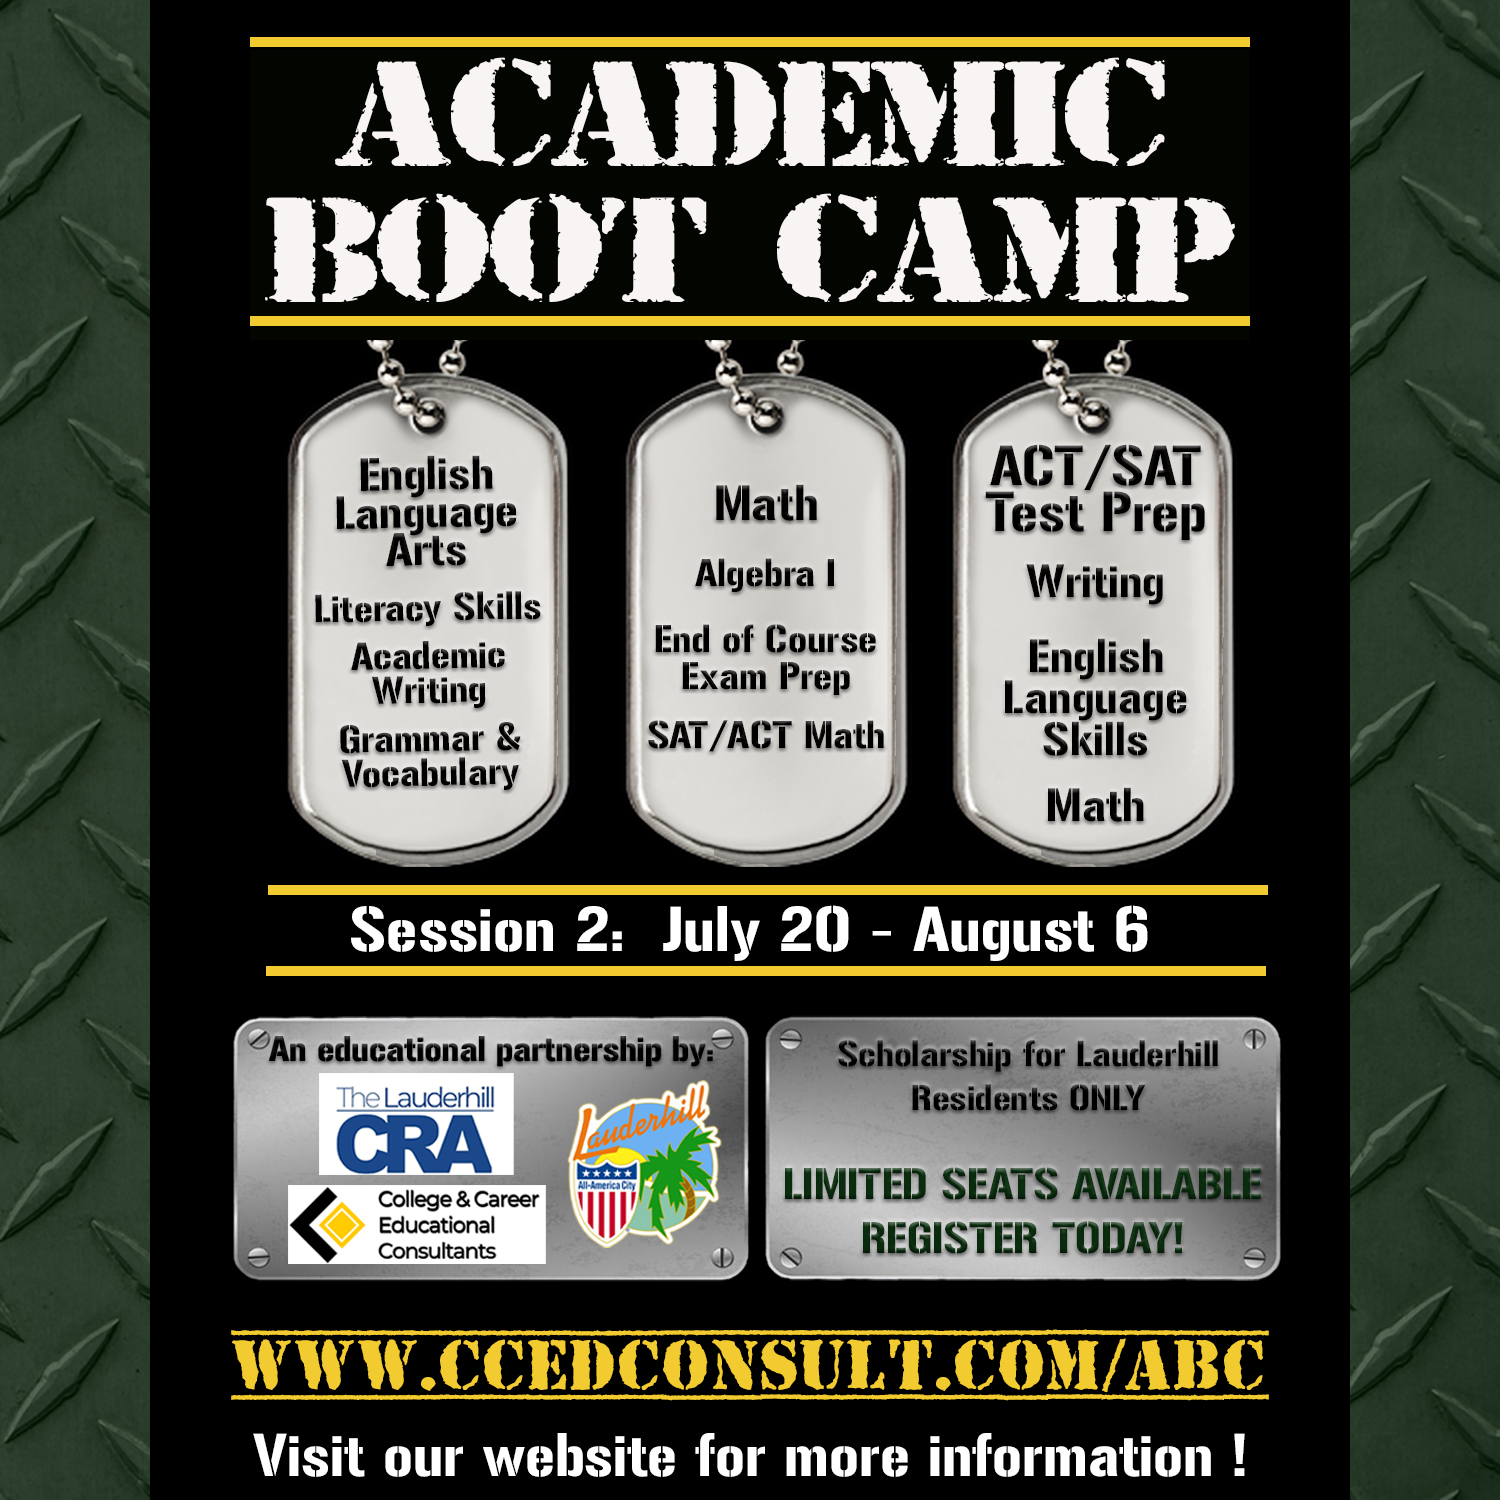 7-20-20 to 8-6-20 - Academic Boot Camp